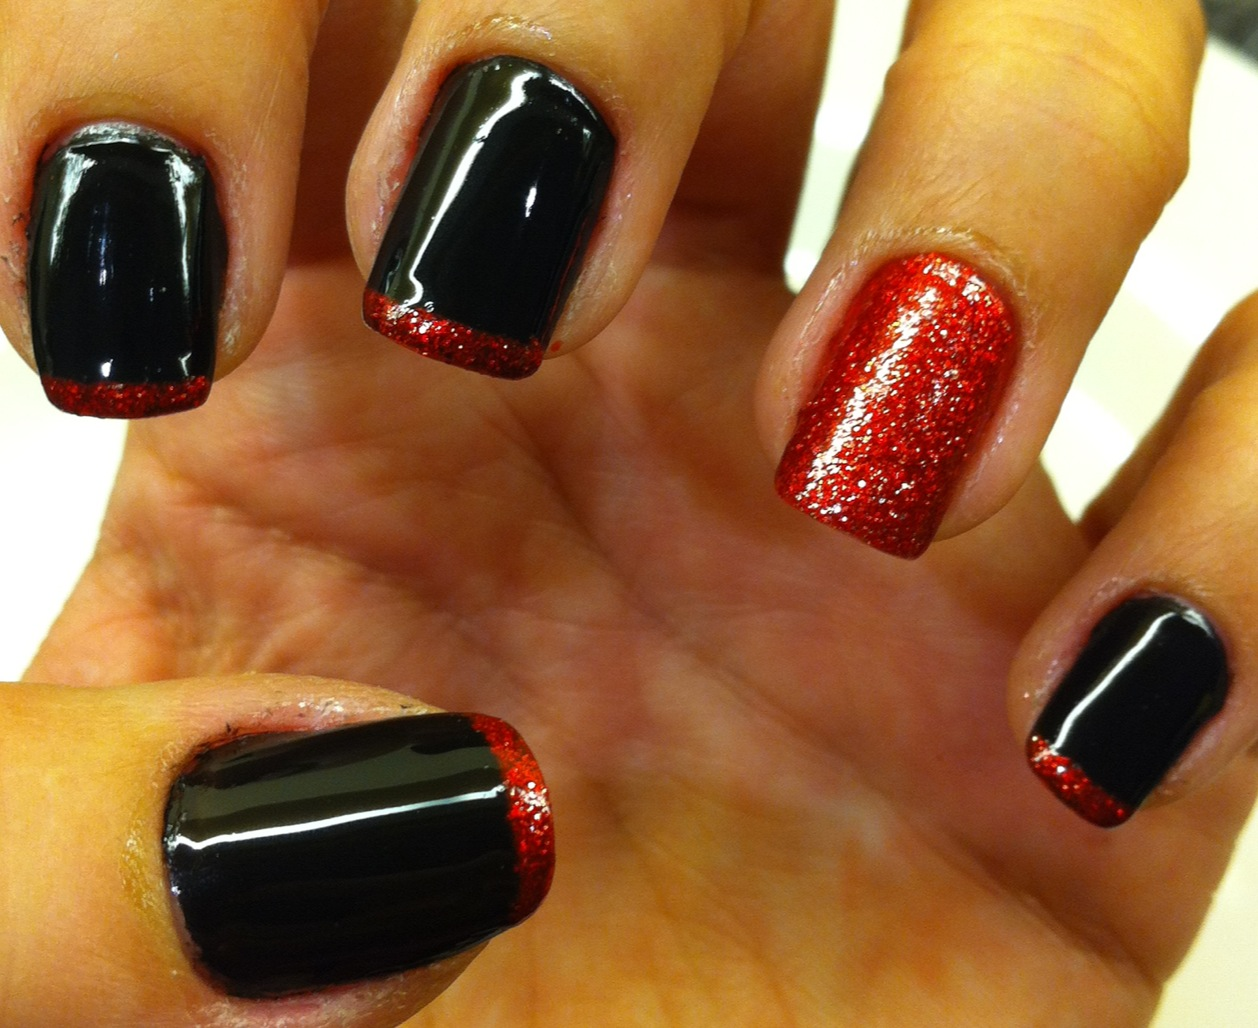 nails of the week � black with red glitter french manicure